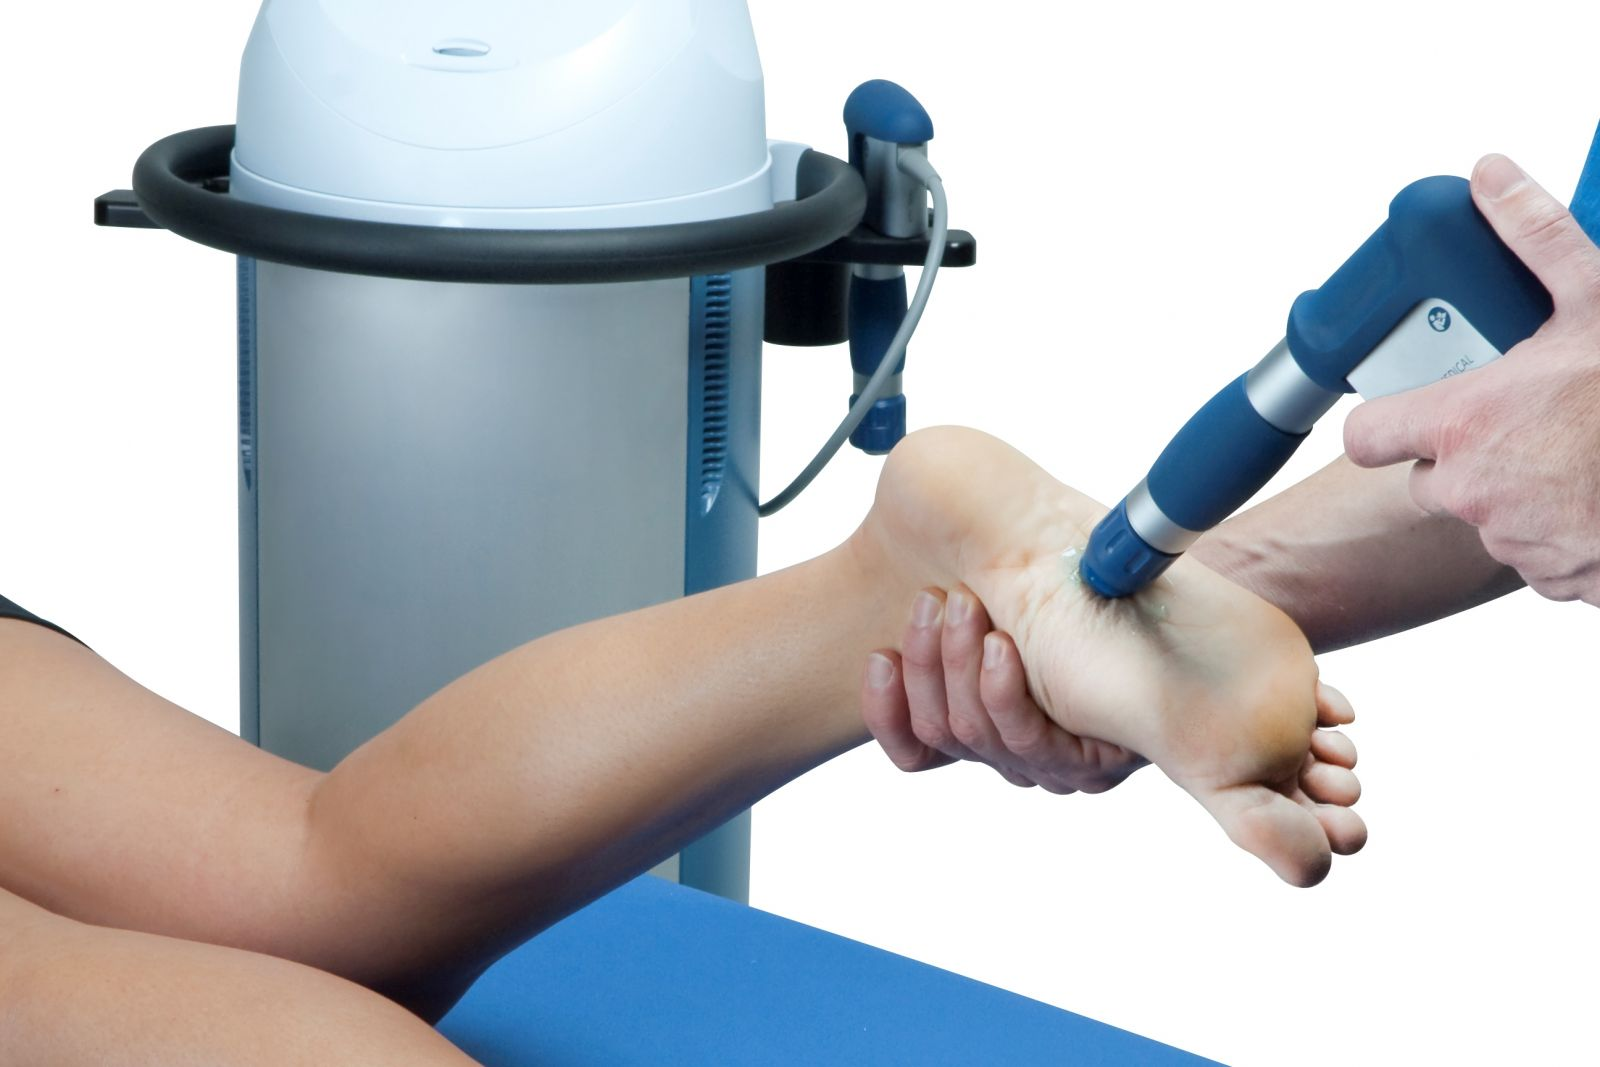 Chattanooga Shockwave - Shockwave Therapy